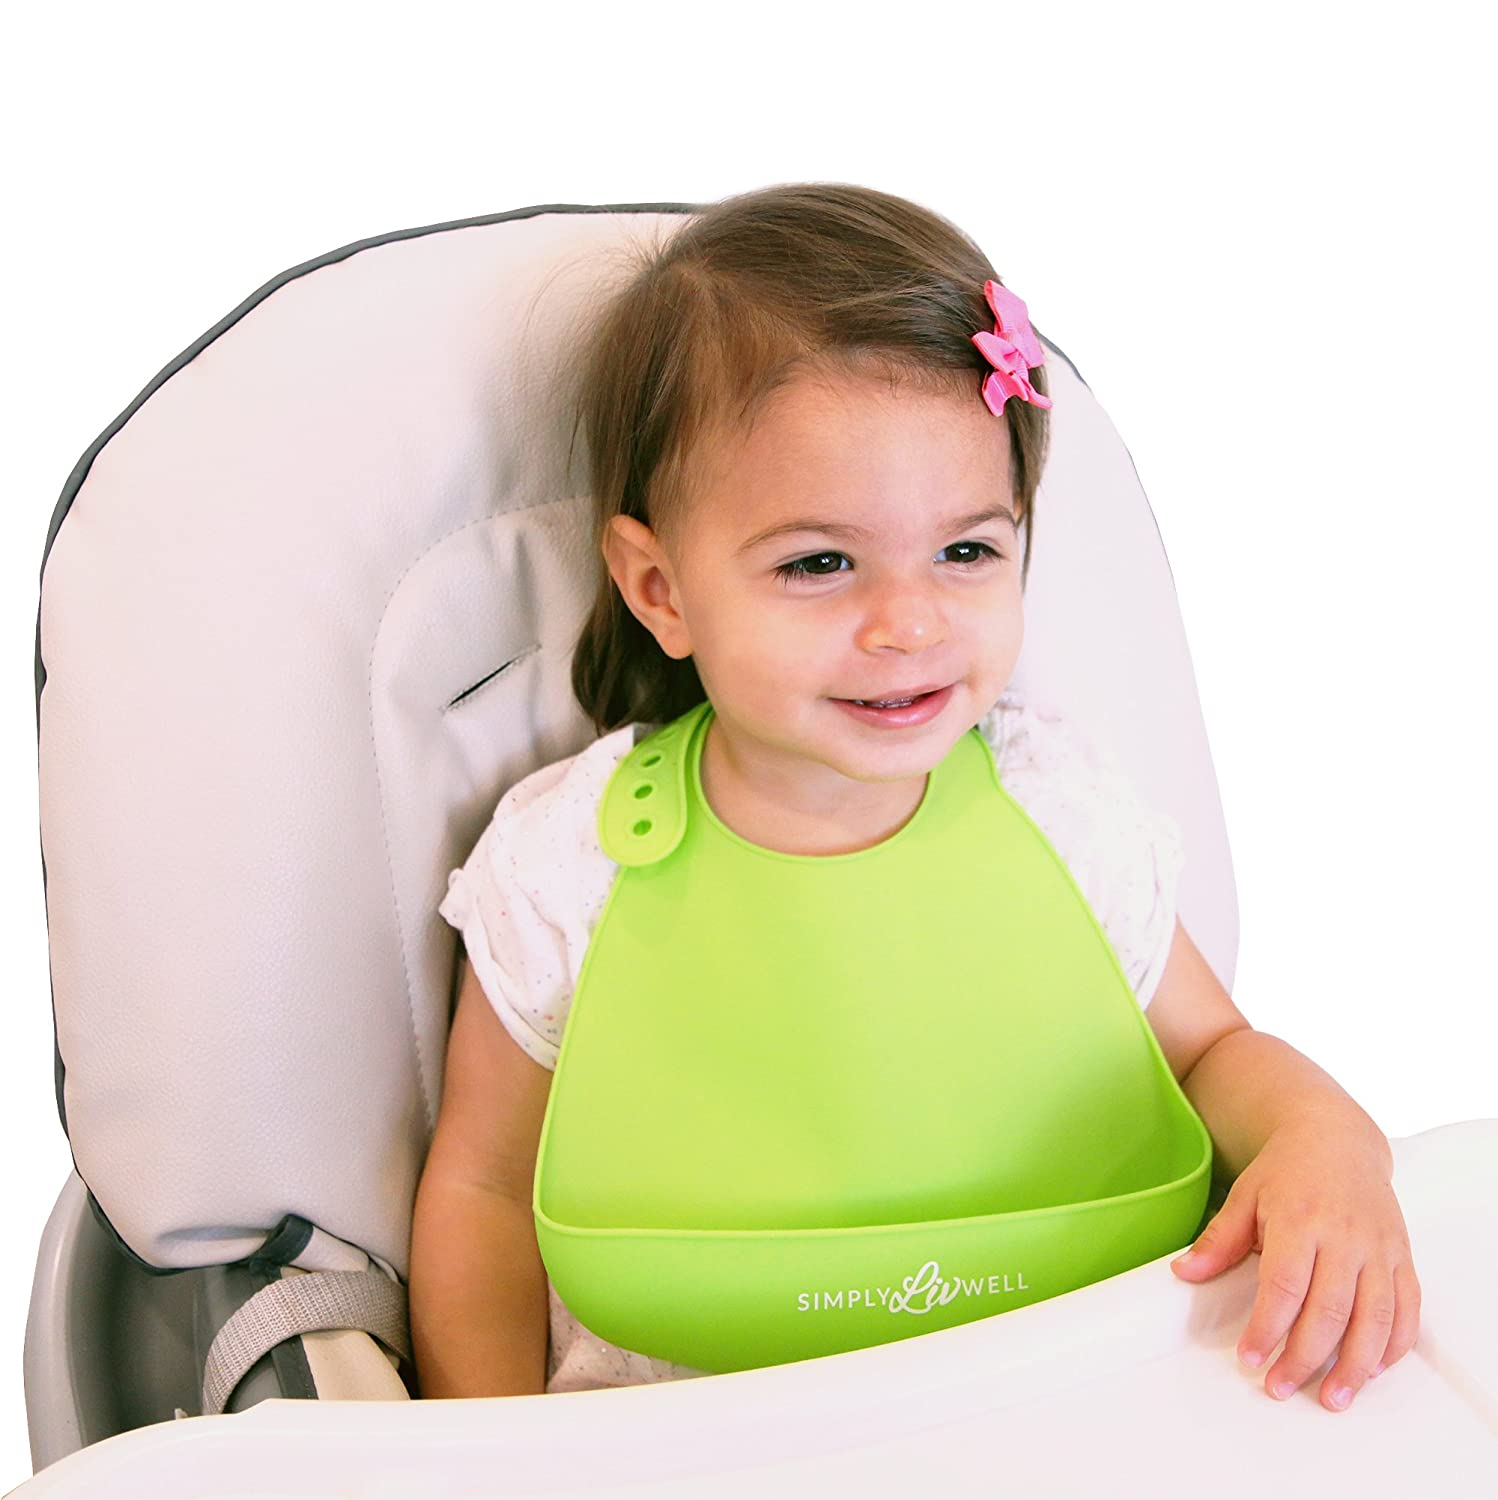 Amazon SALE Best Silicone Baby Bibs with Built In Food